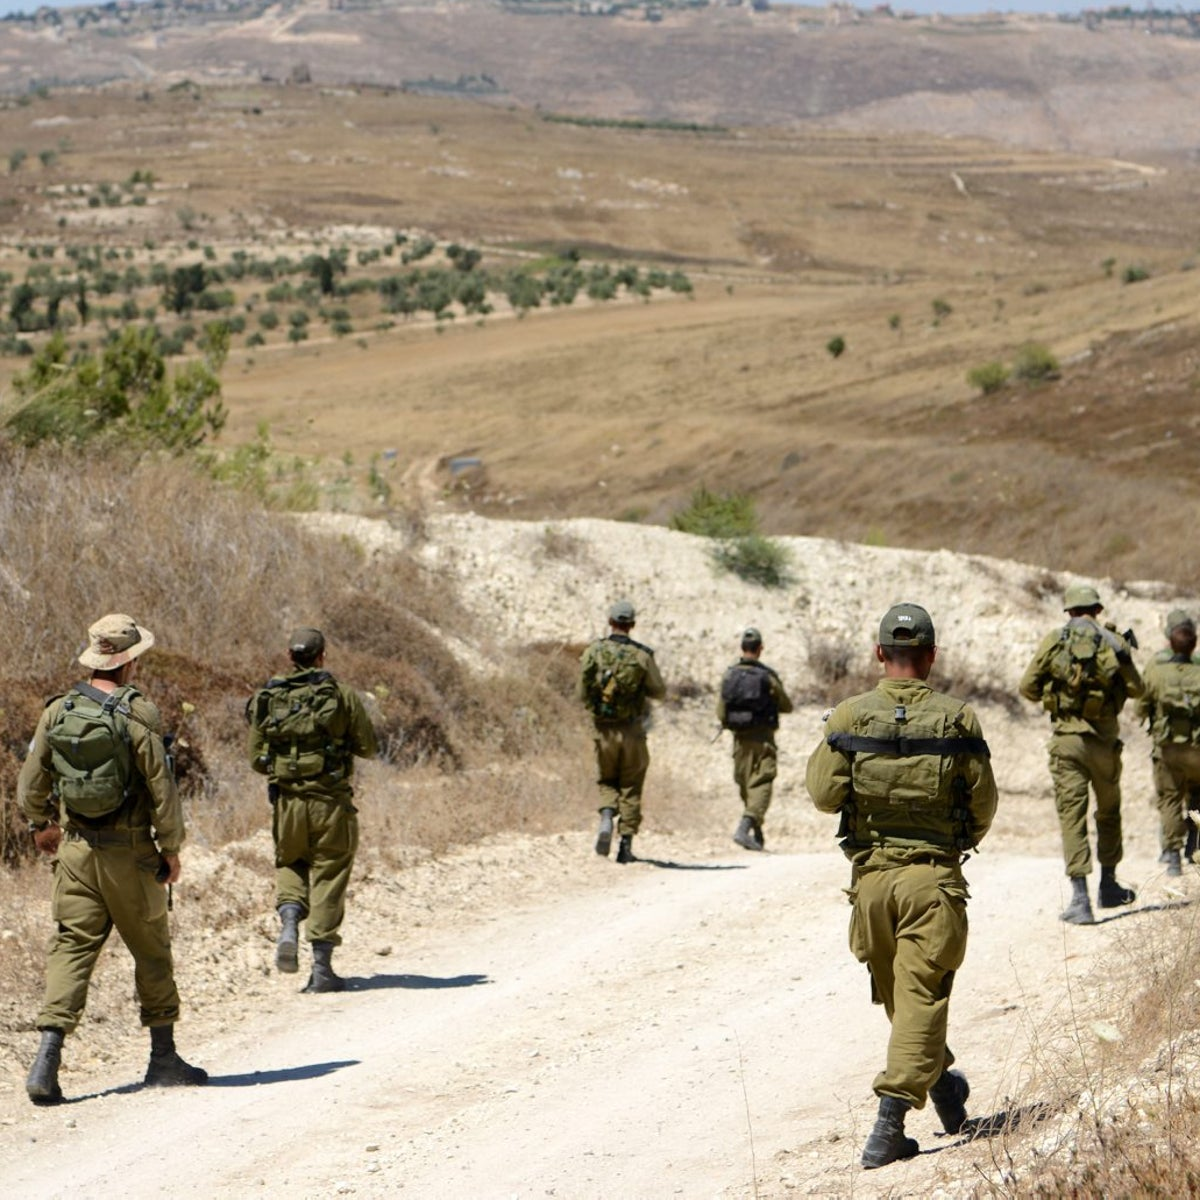 Israeli soldiers near the border of Israel and Lebanon, July 7, 2016.